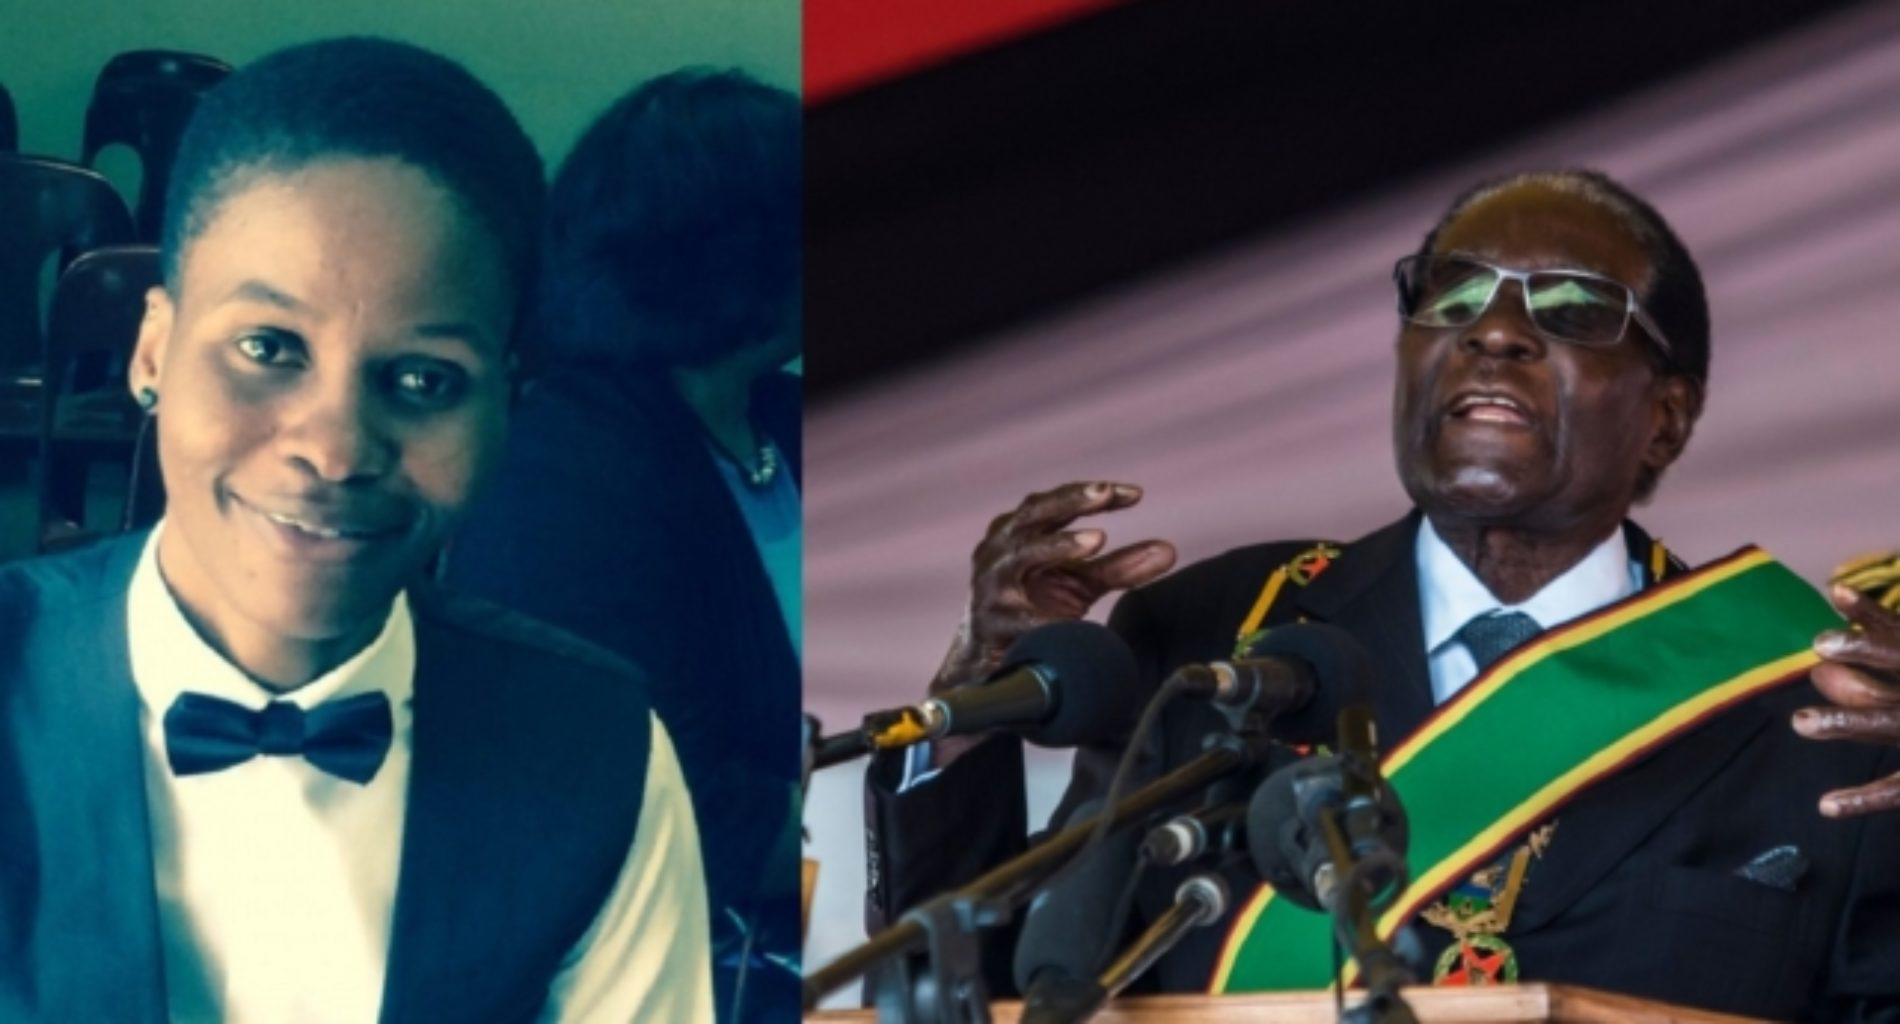 """""""As a queer Zimbabwean, the ousting of Robert Mugabe does not bring me much hope."""" Says Writer Joyline Maenzanise"""